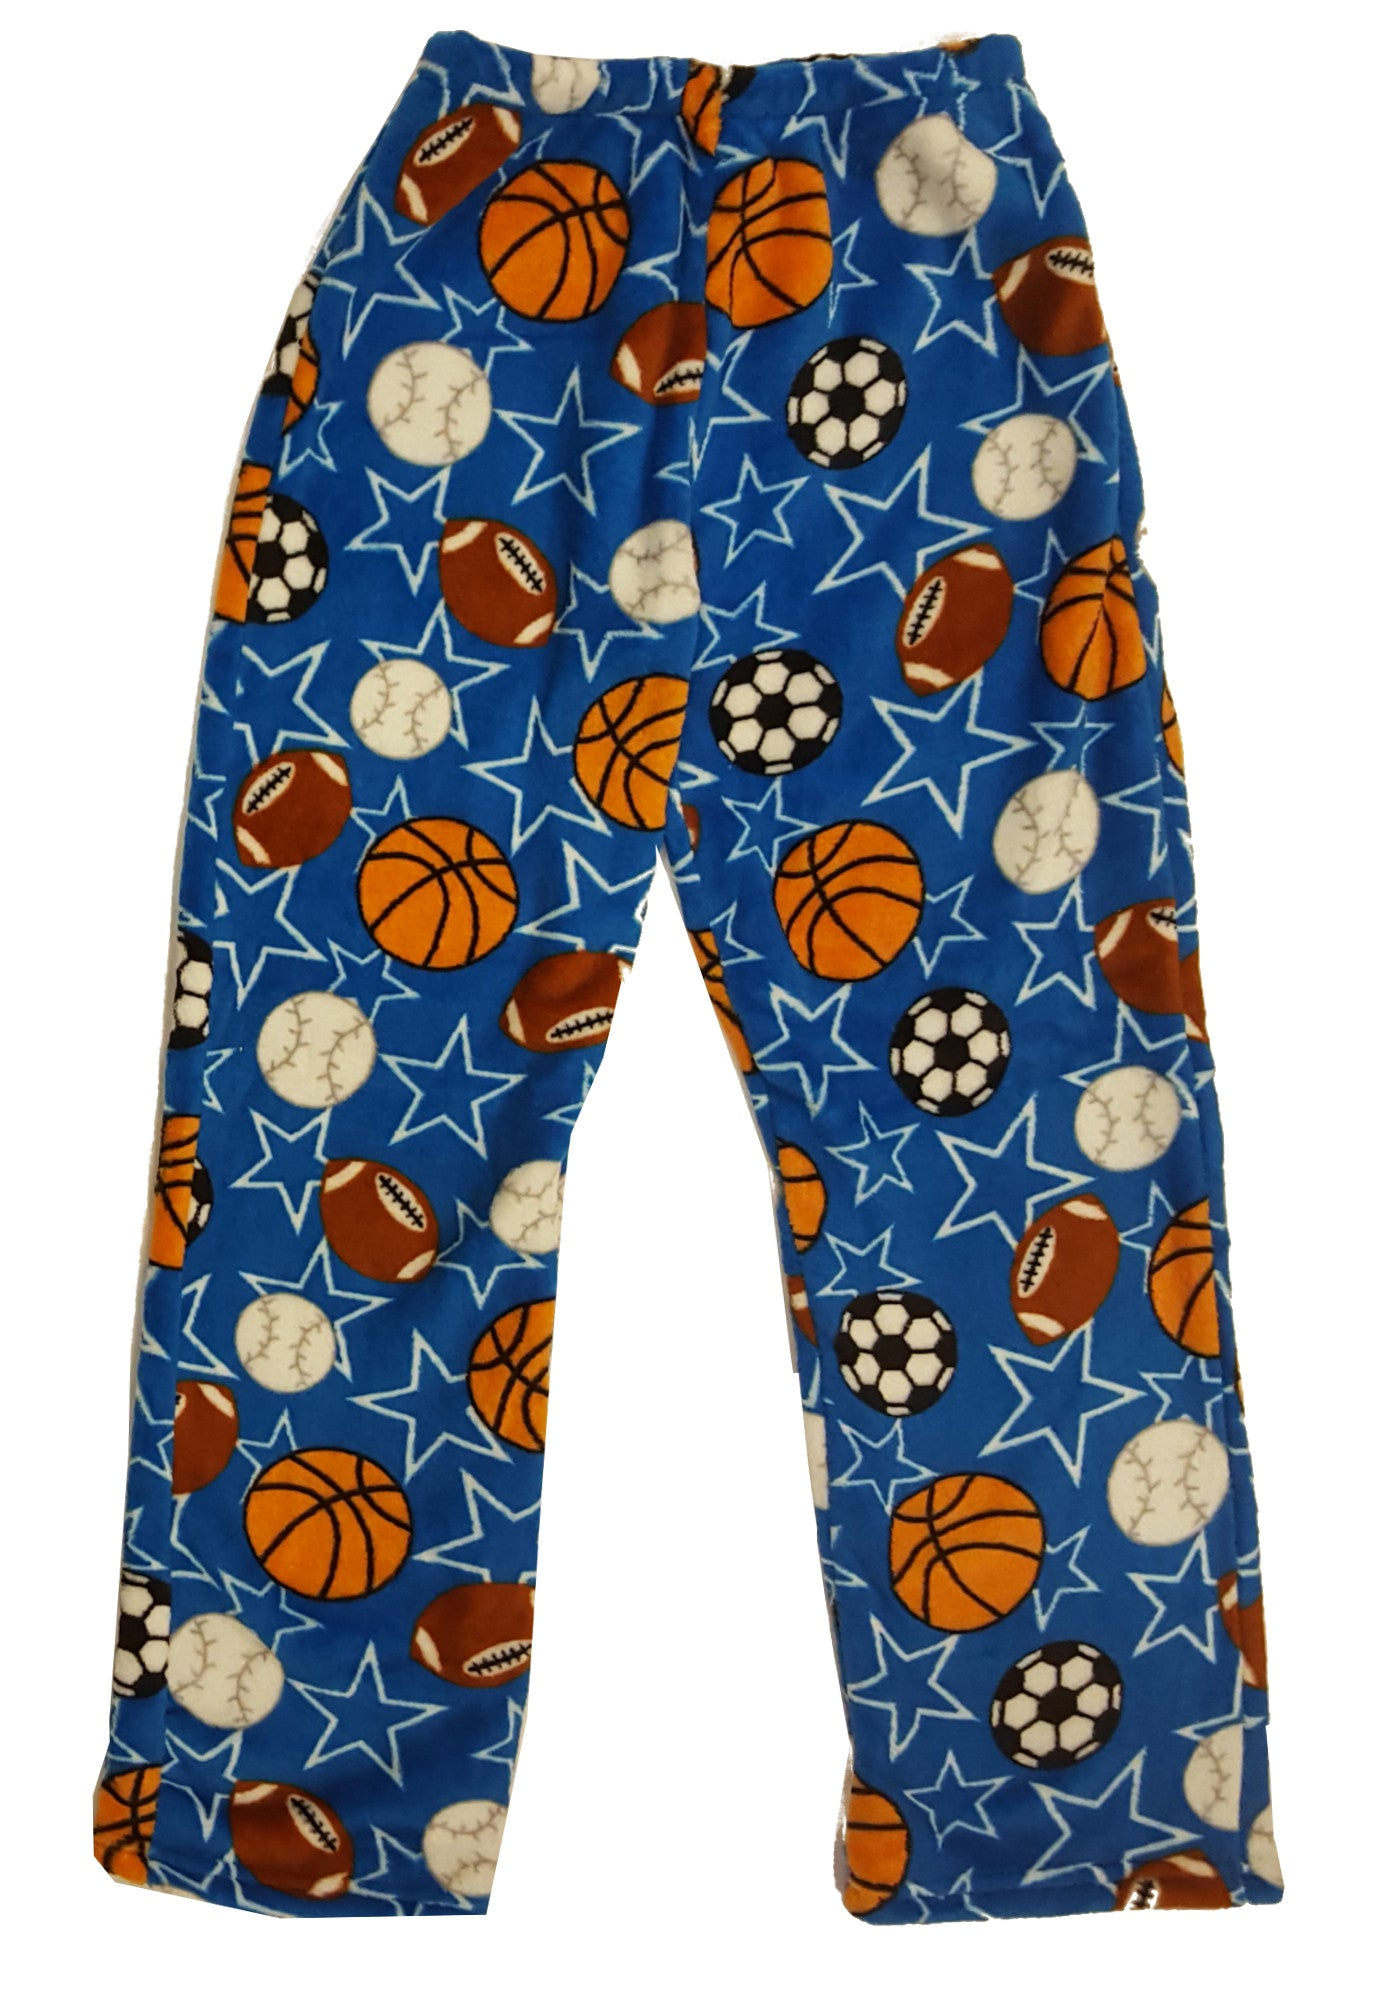 kids fuzzy pants, boys fuzzy pajama pants, girls fleece pajama pants, kids fuzzy camp pajamas, fuzzy sports pants